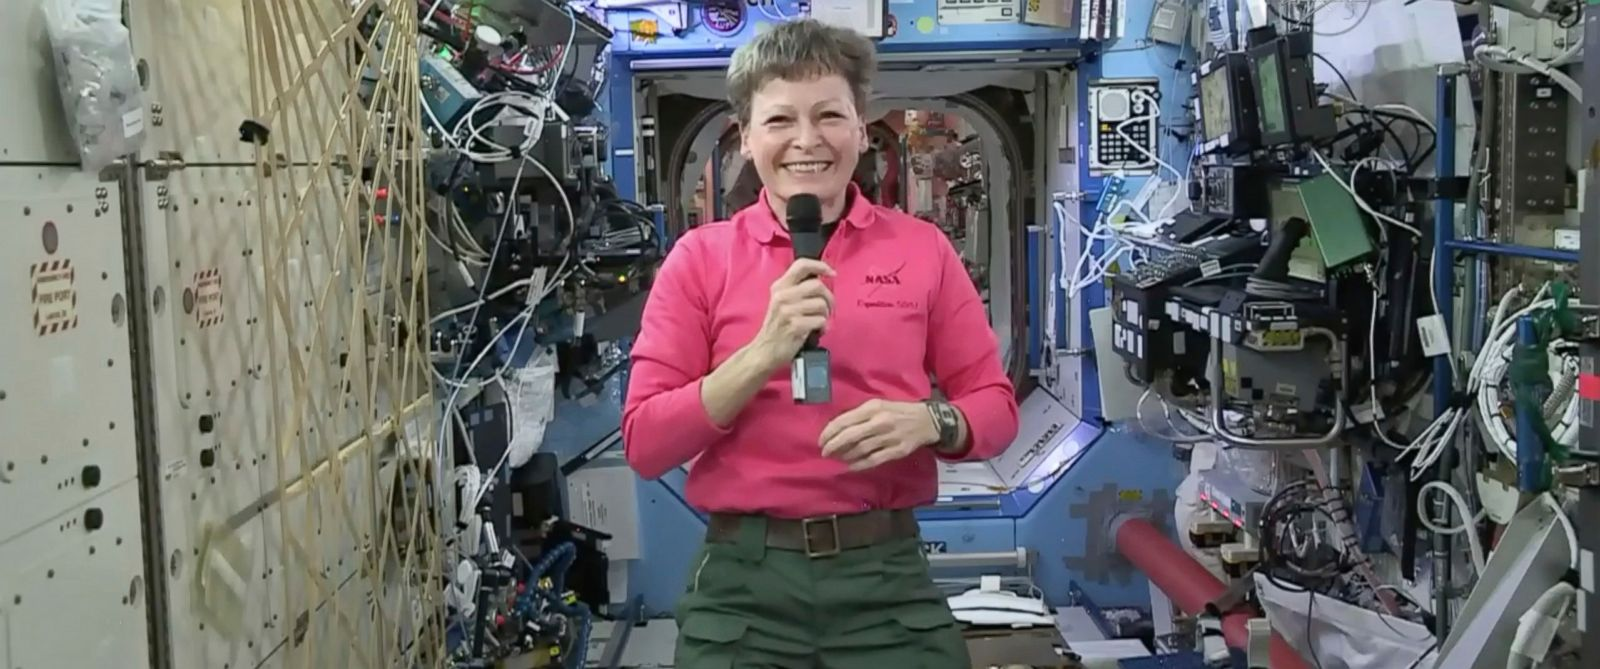 PHOTO: In this Thursday, April 13, 2017 image from video made available by NASA, astronaut Peggy Whitson speaks during an interview aboard the International Space Station.